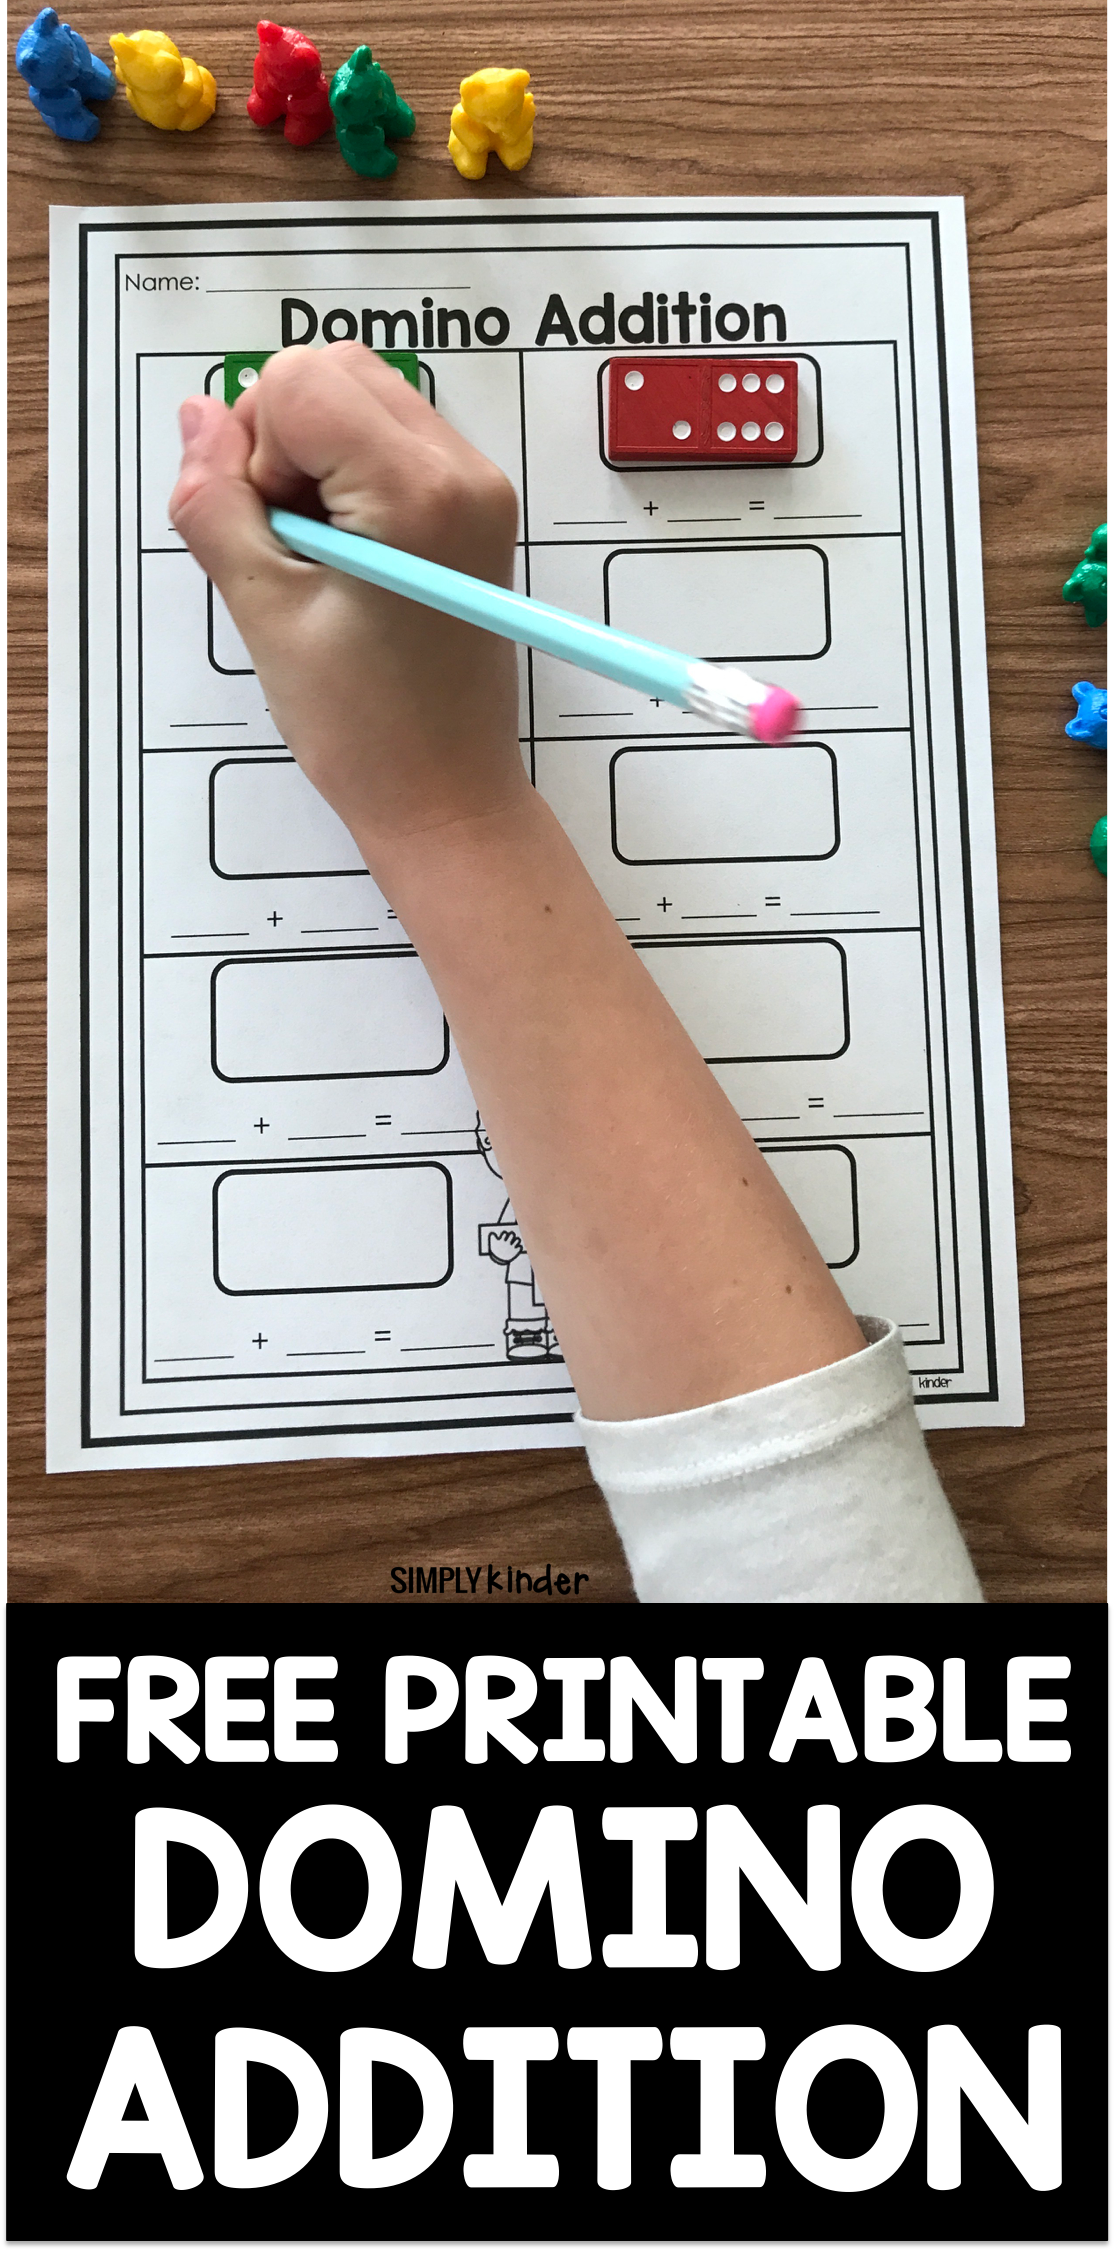 Free Printable Domino Addition Simply Kinder Kindergarten Math Games Math Addition Games Free Math [ 2250 x 1114 Pixel ]